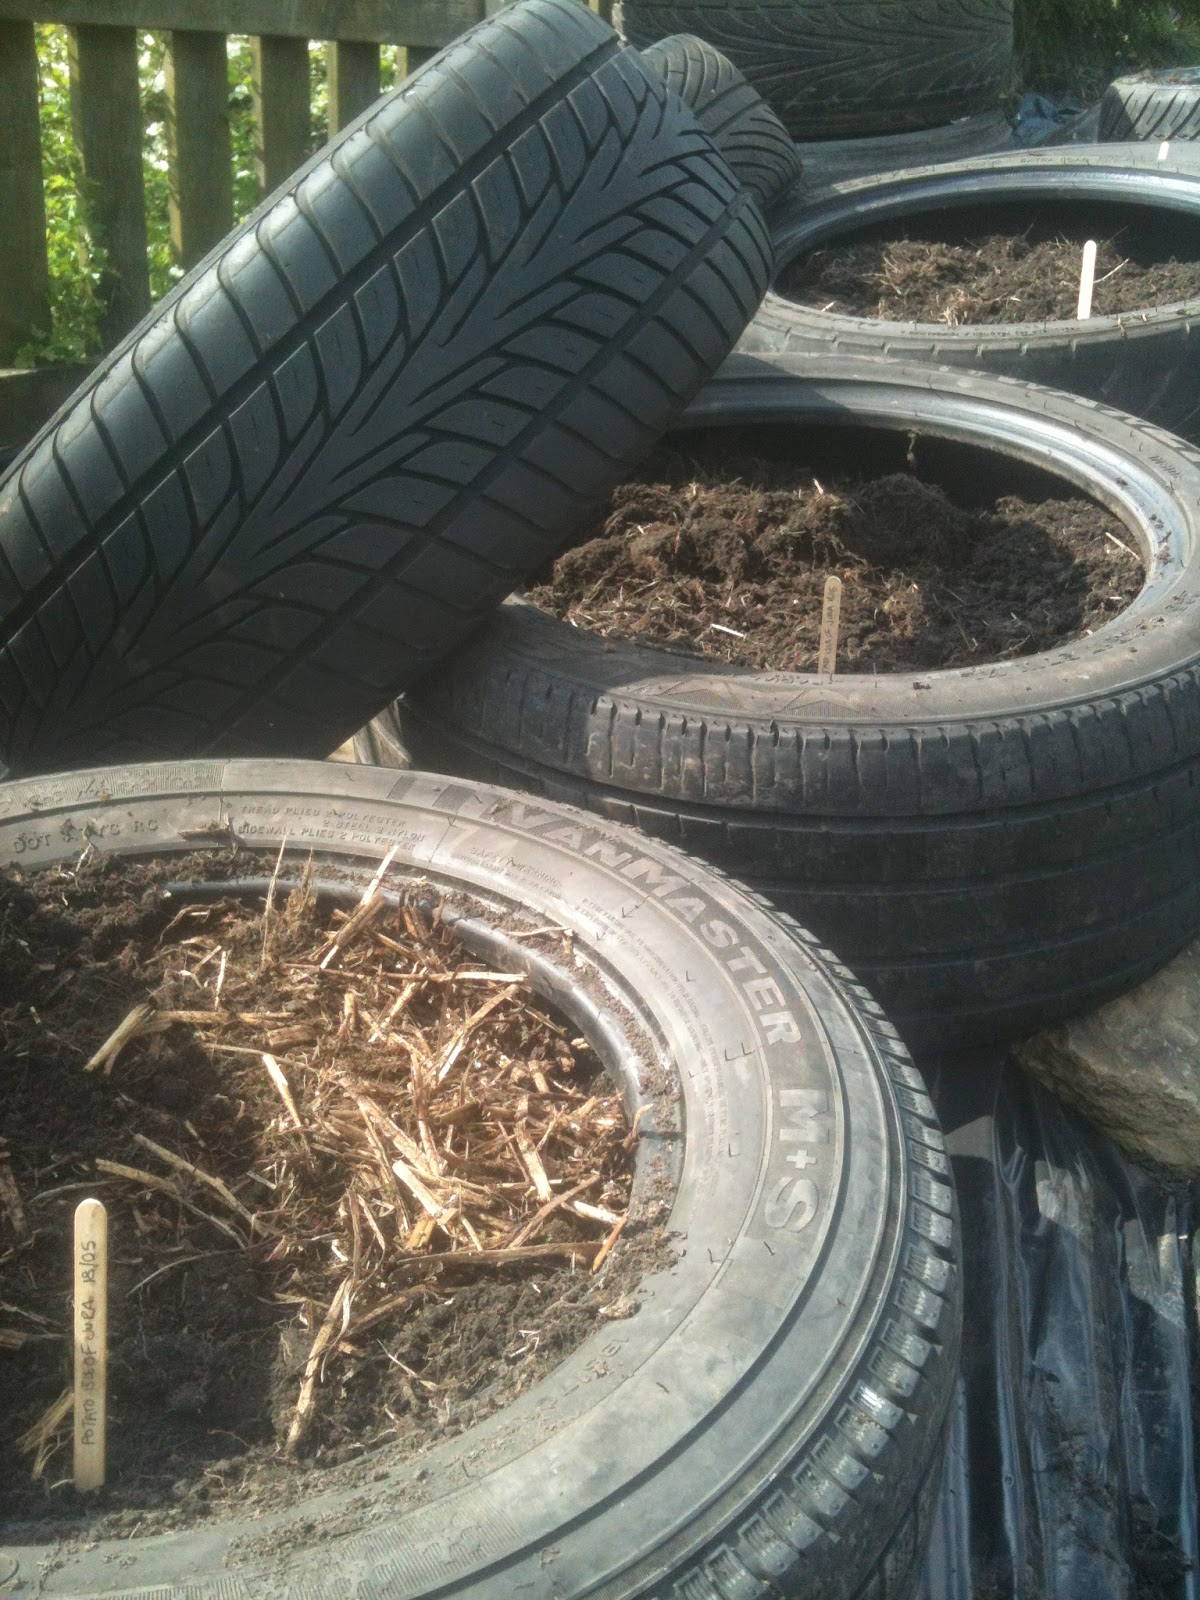 Tyres can be used as planters and coldframes #lifeonpigrow